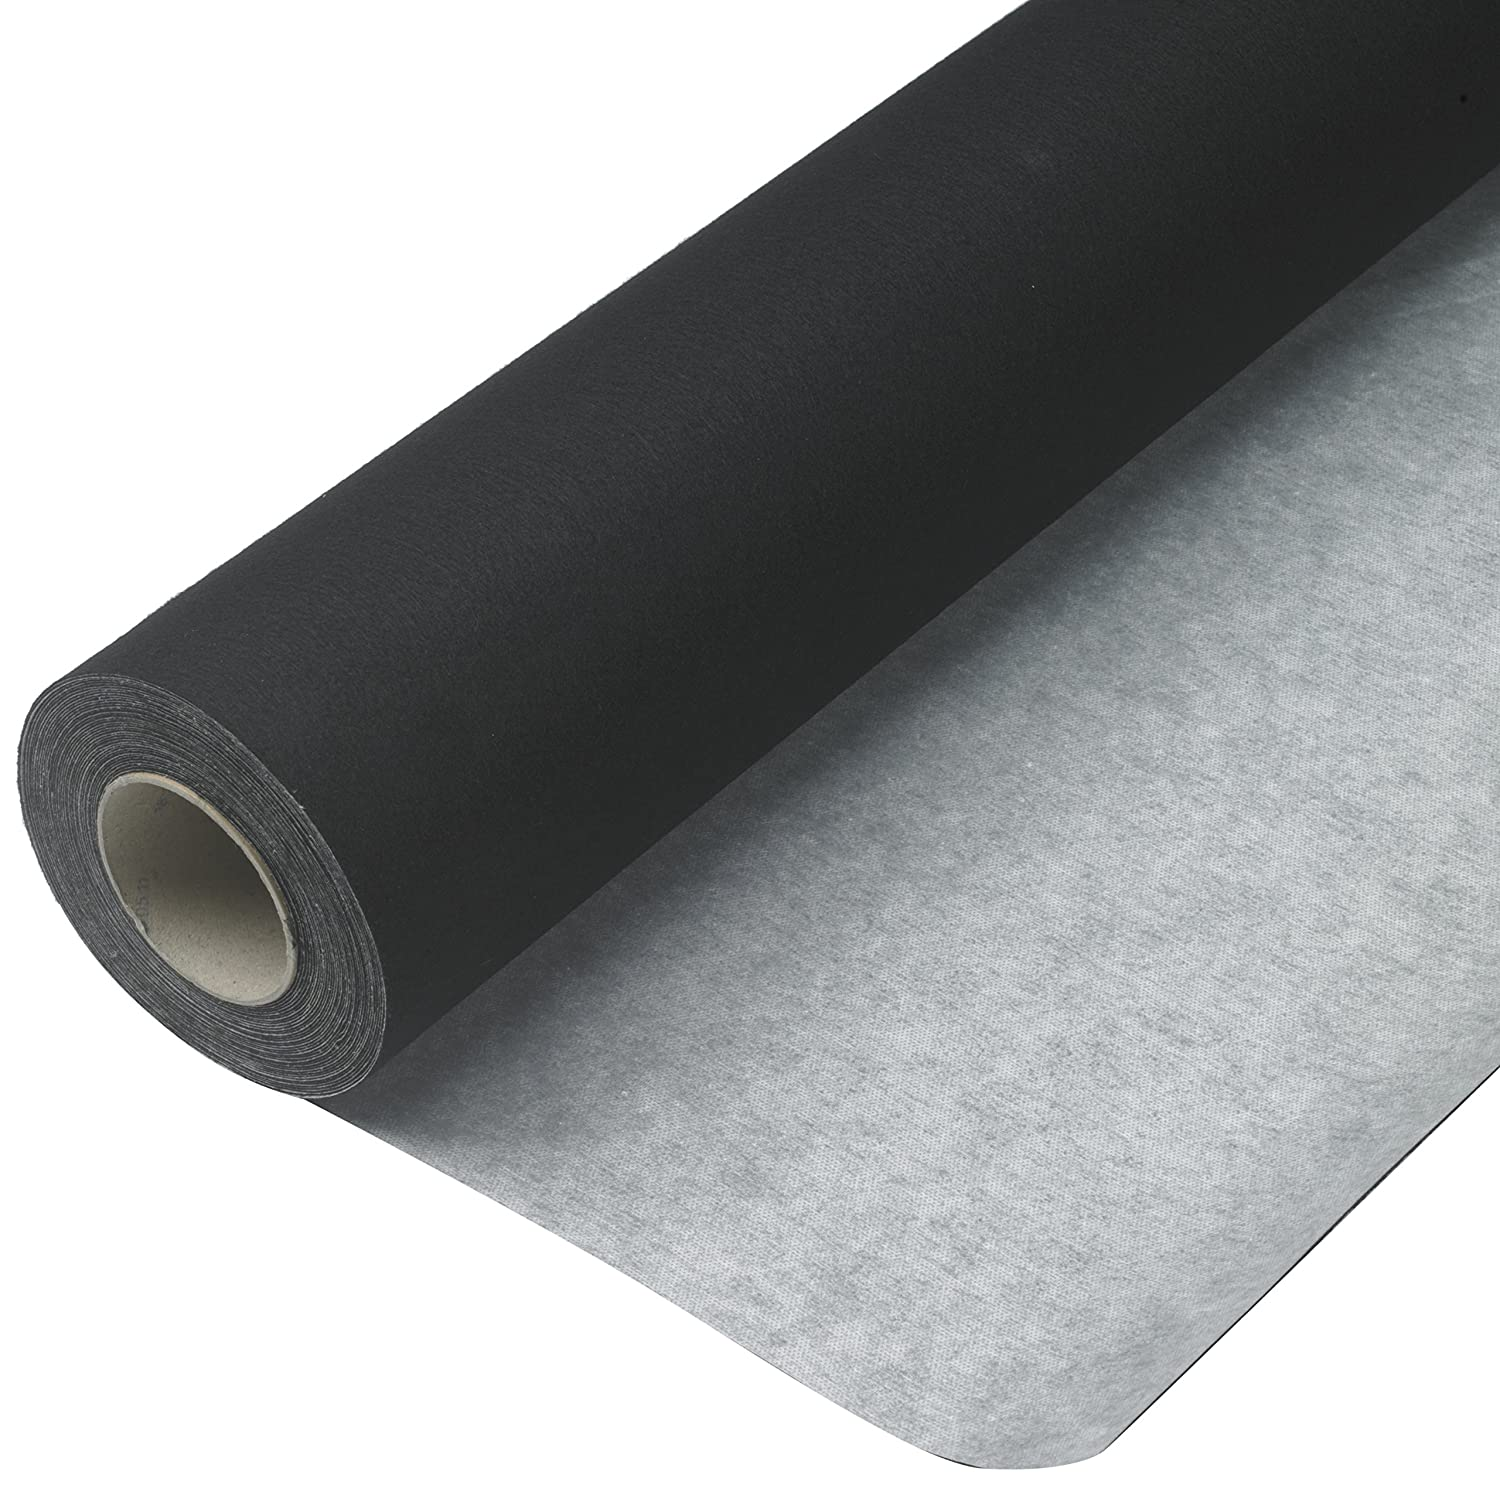 Tile rite wfm457 20m waterproof floor matting roll with anti crack tile rite wfm457 20m waterproof floor matting roll with anti crack black amazon diy tools dailygadgetfo Choice Image